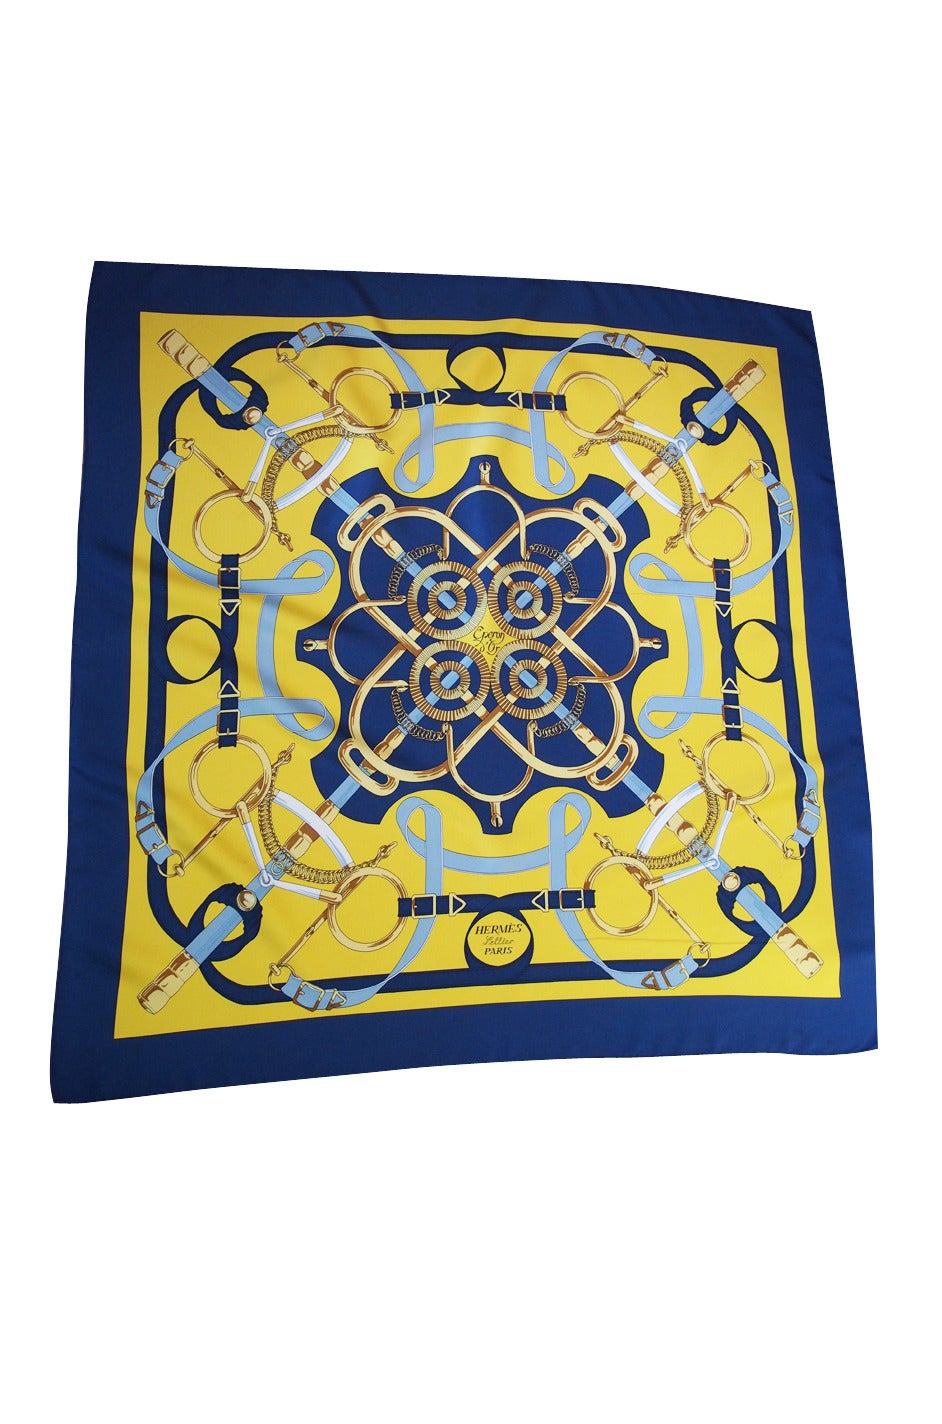 """First issued in 1974, this is the """"Eperon D'or"""" by Henri d'Origny. Unworn, with care tag is attached. The colors are bright and vibrant and this is a beautiful blue and yellow version  Handsewn, handrolled to front, plump. Does not come"""